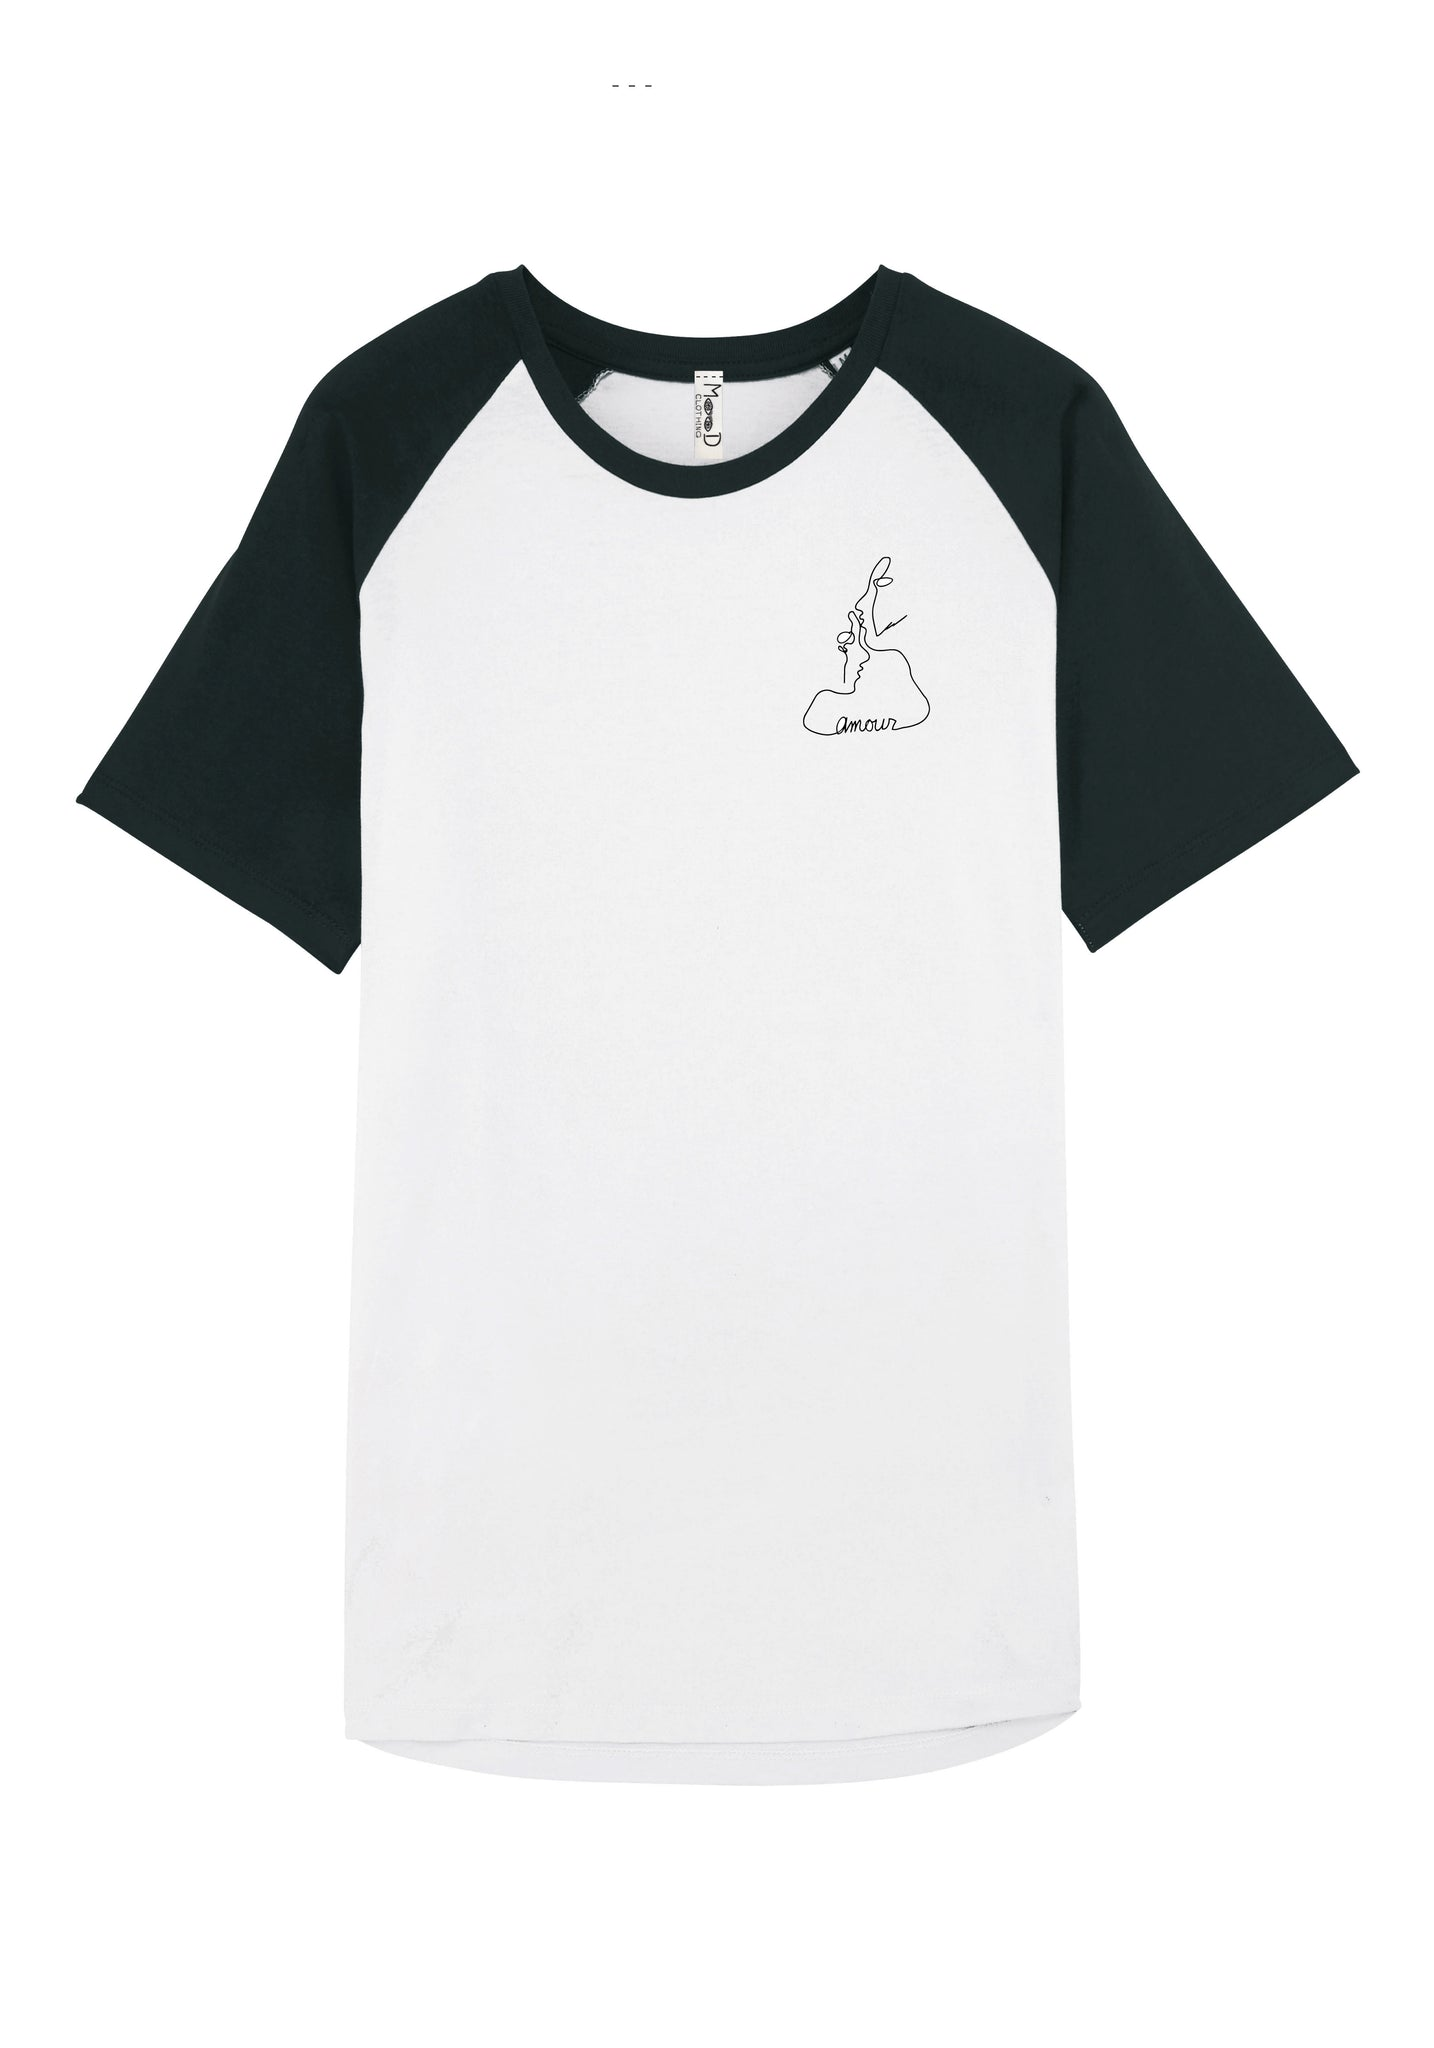 T-shirt baseball - Amour - Mood Clothing